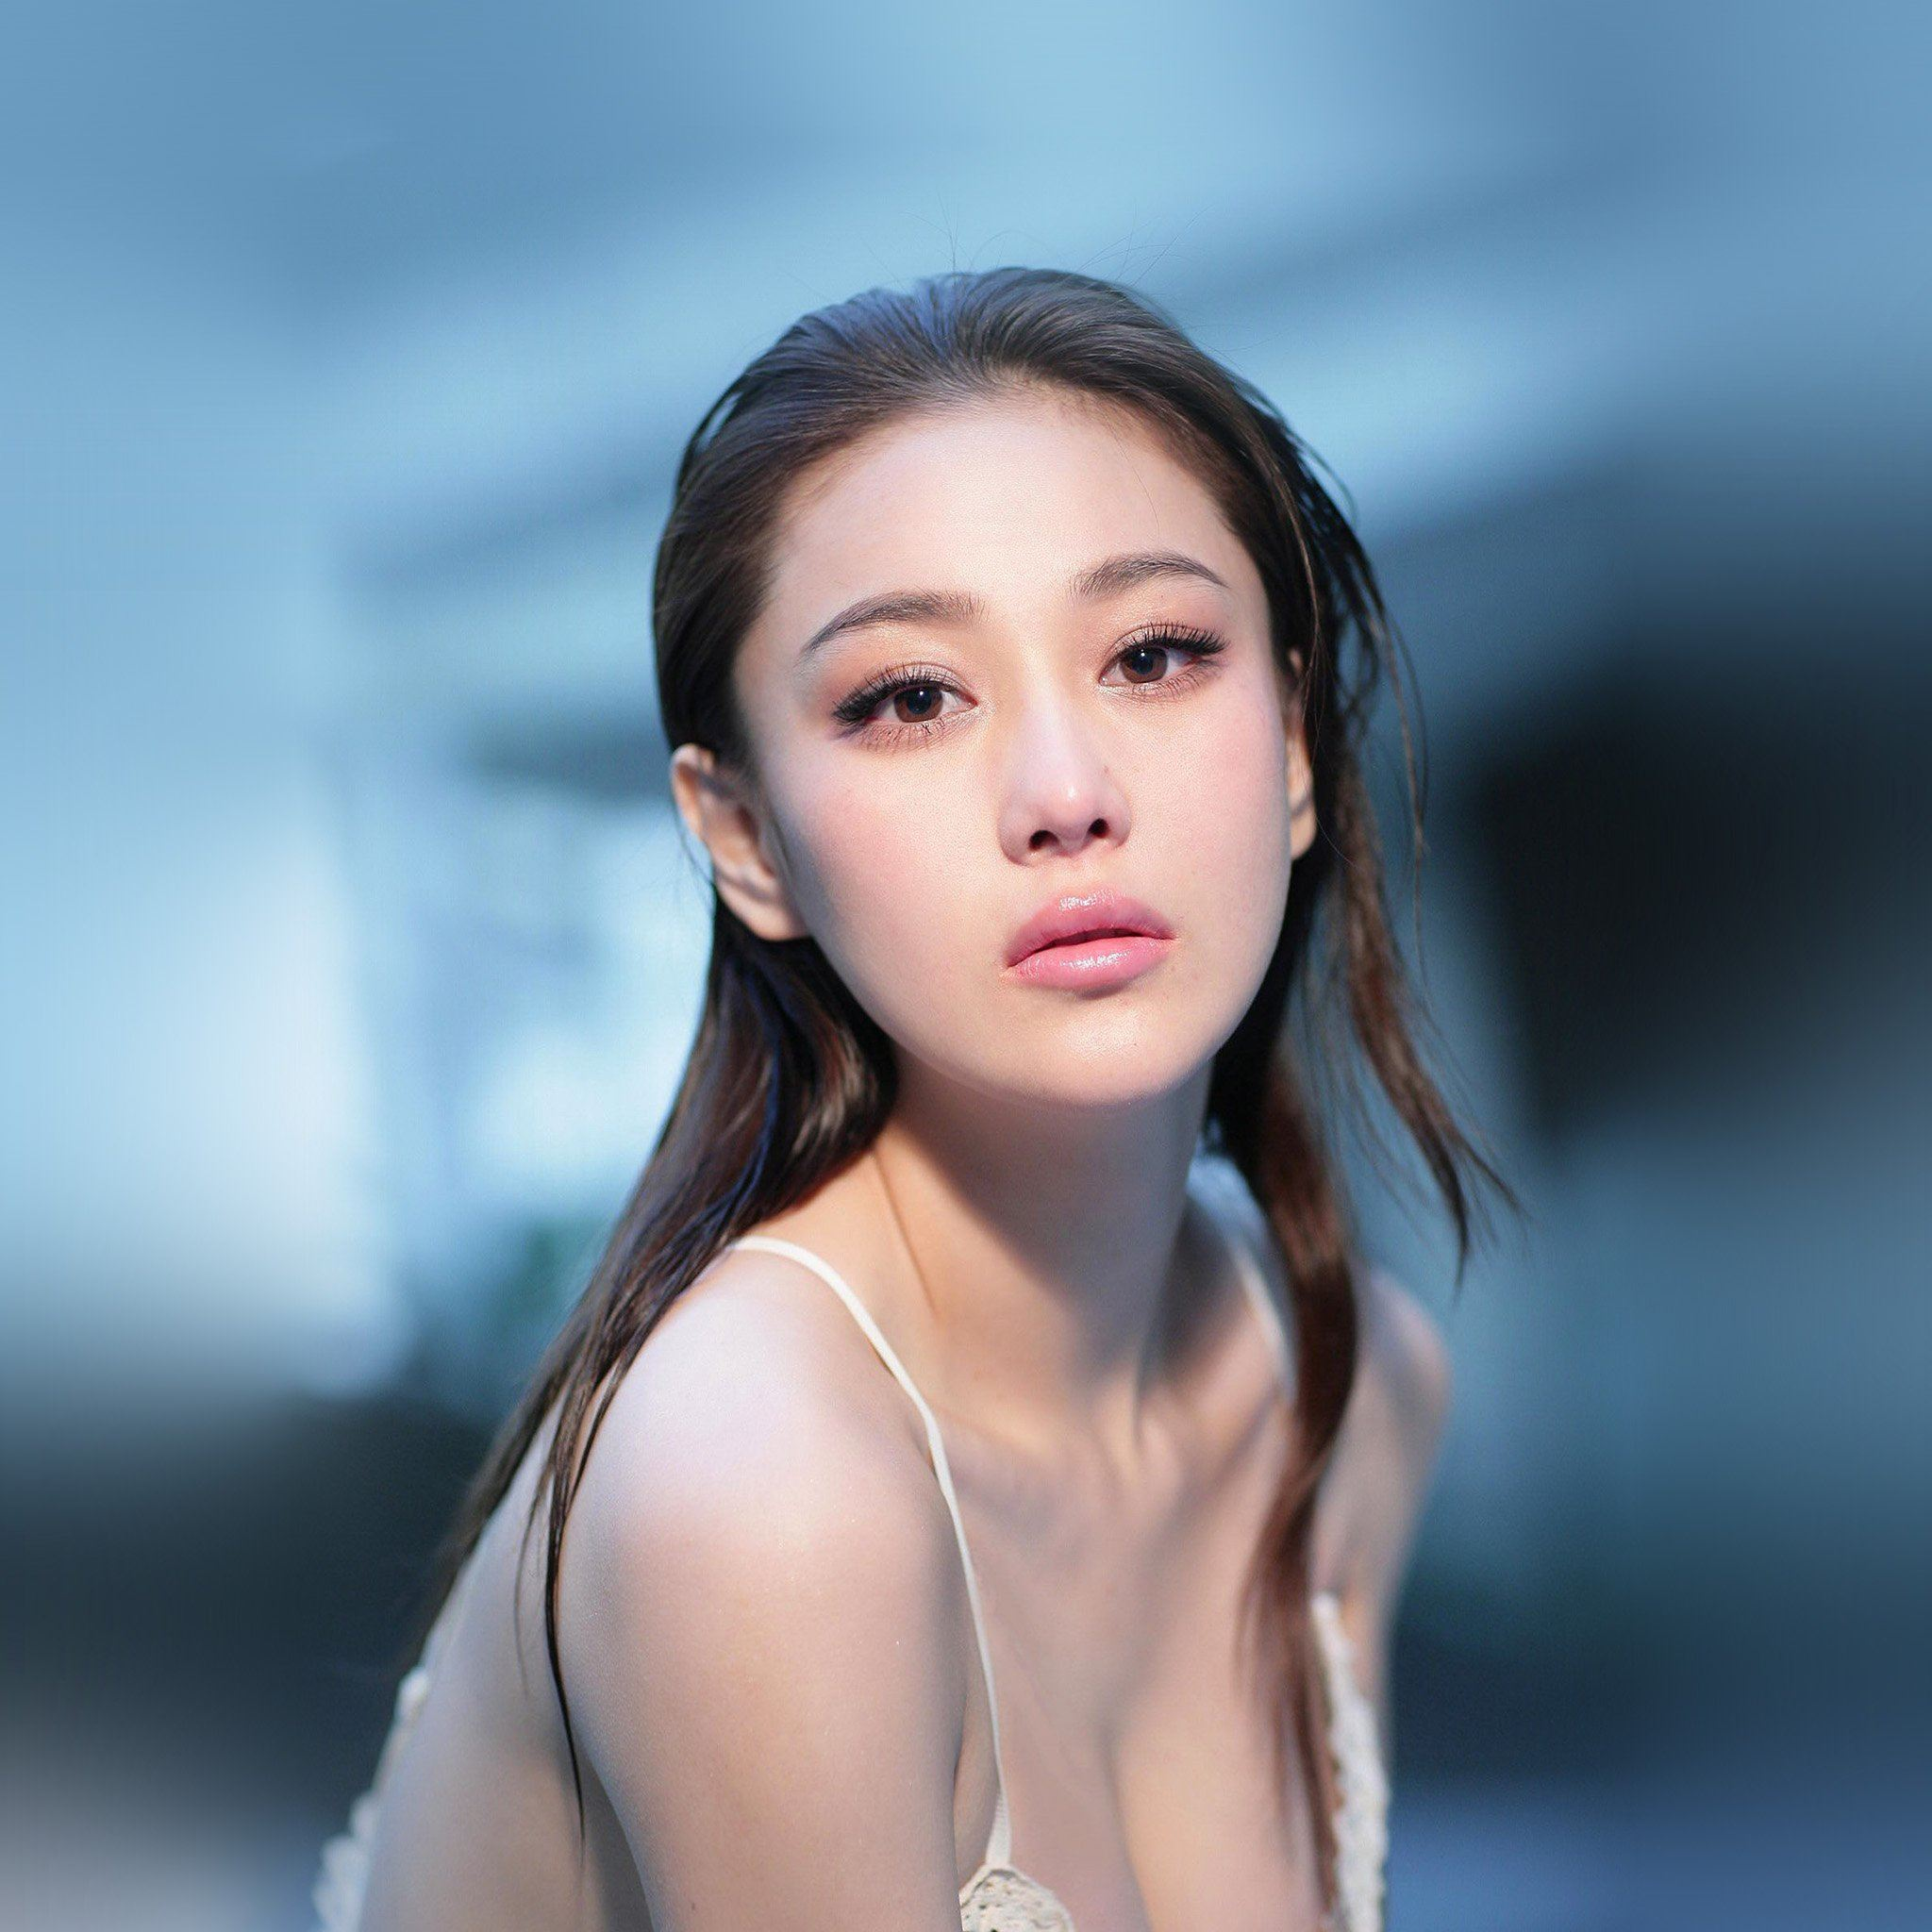 Chinese Girl Hot Model Star Ipad Air Wallpapers Free Download